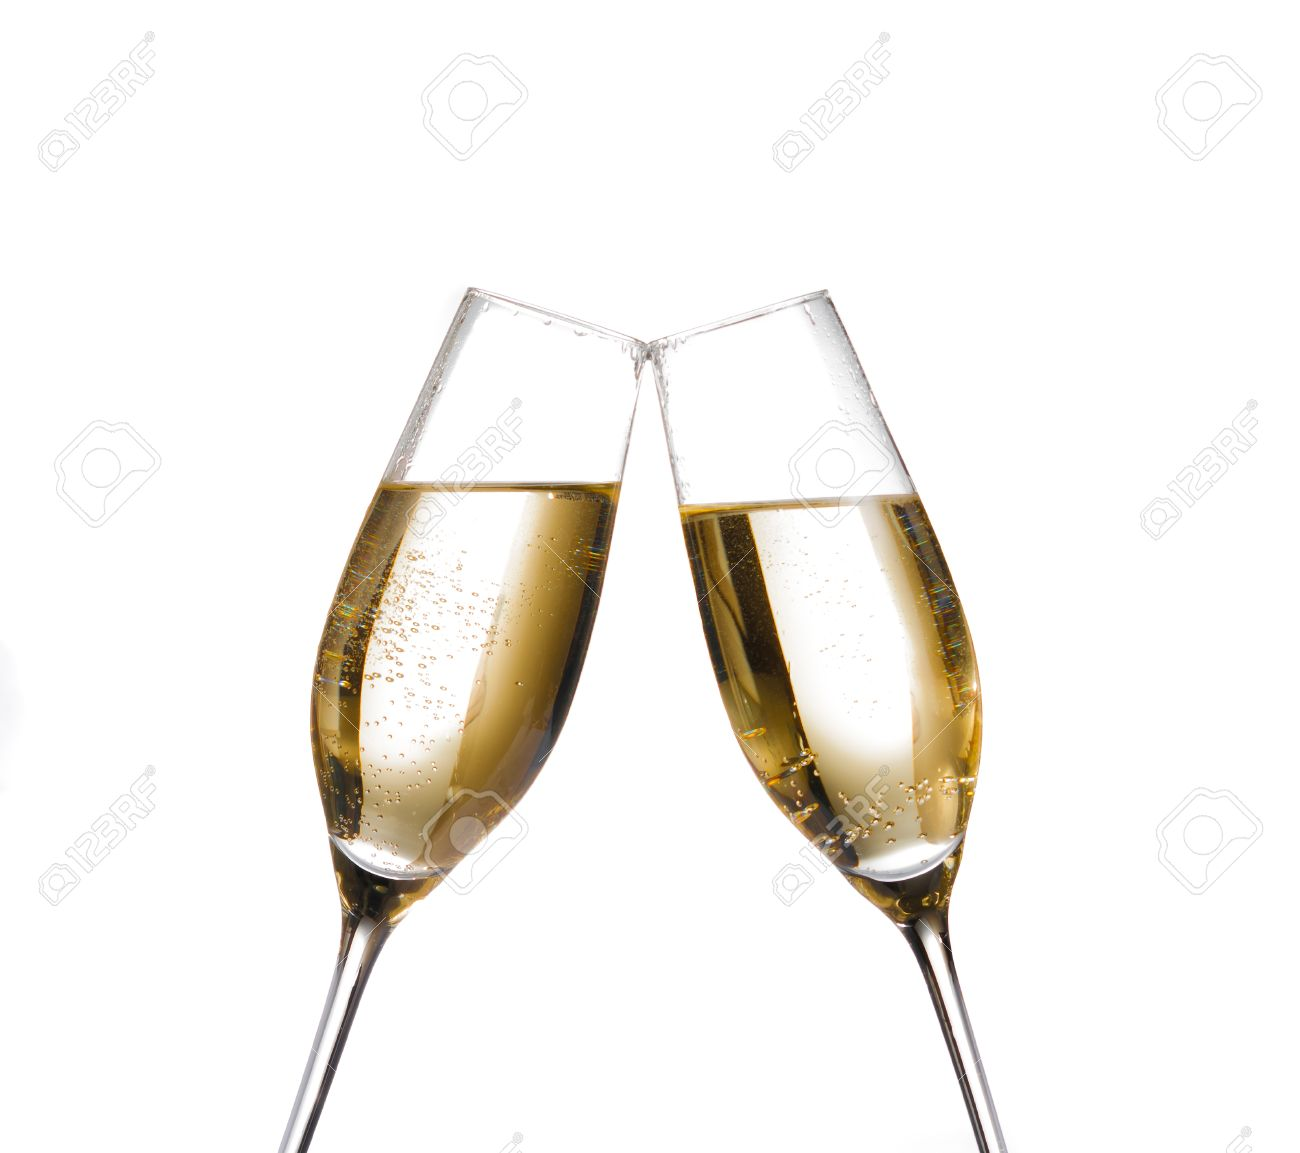 two champagne flutes with golden bubbles make cheers on white background with space for text - 25096305